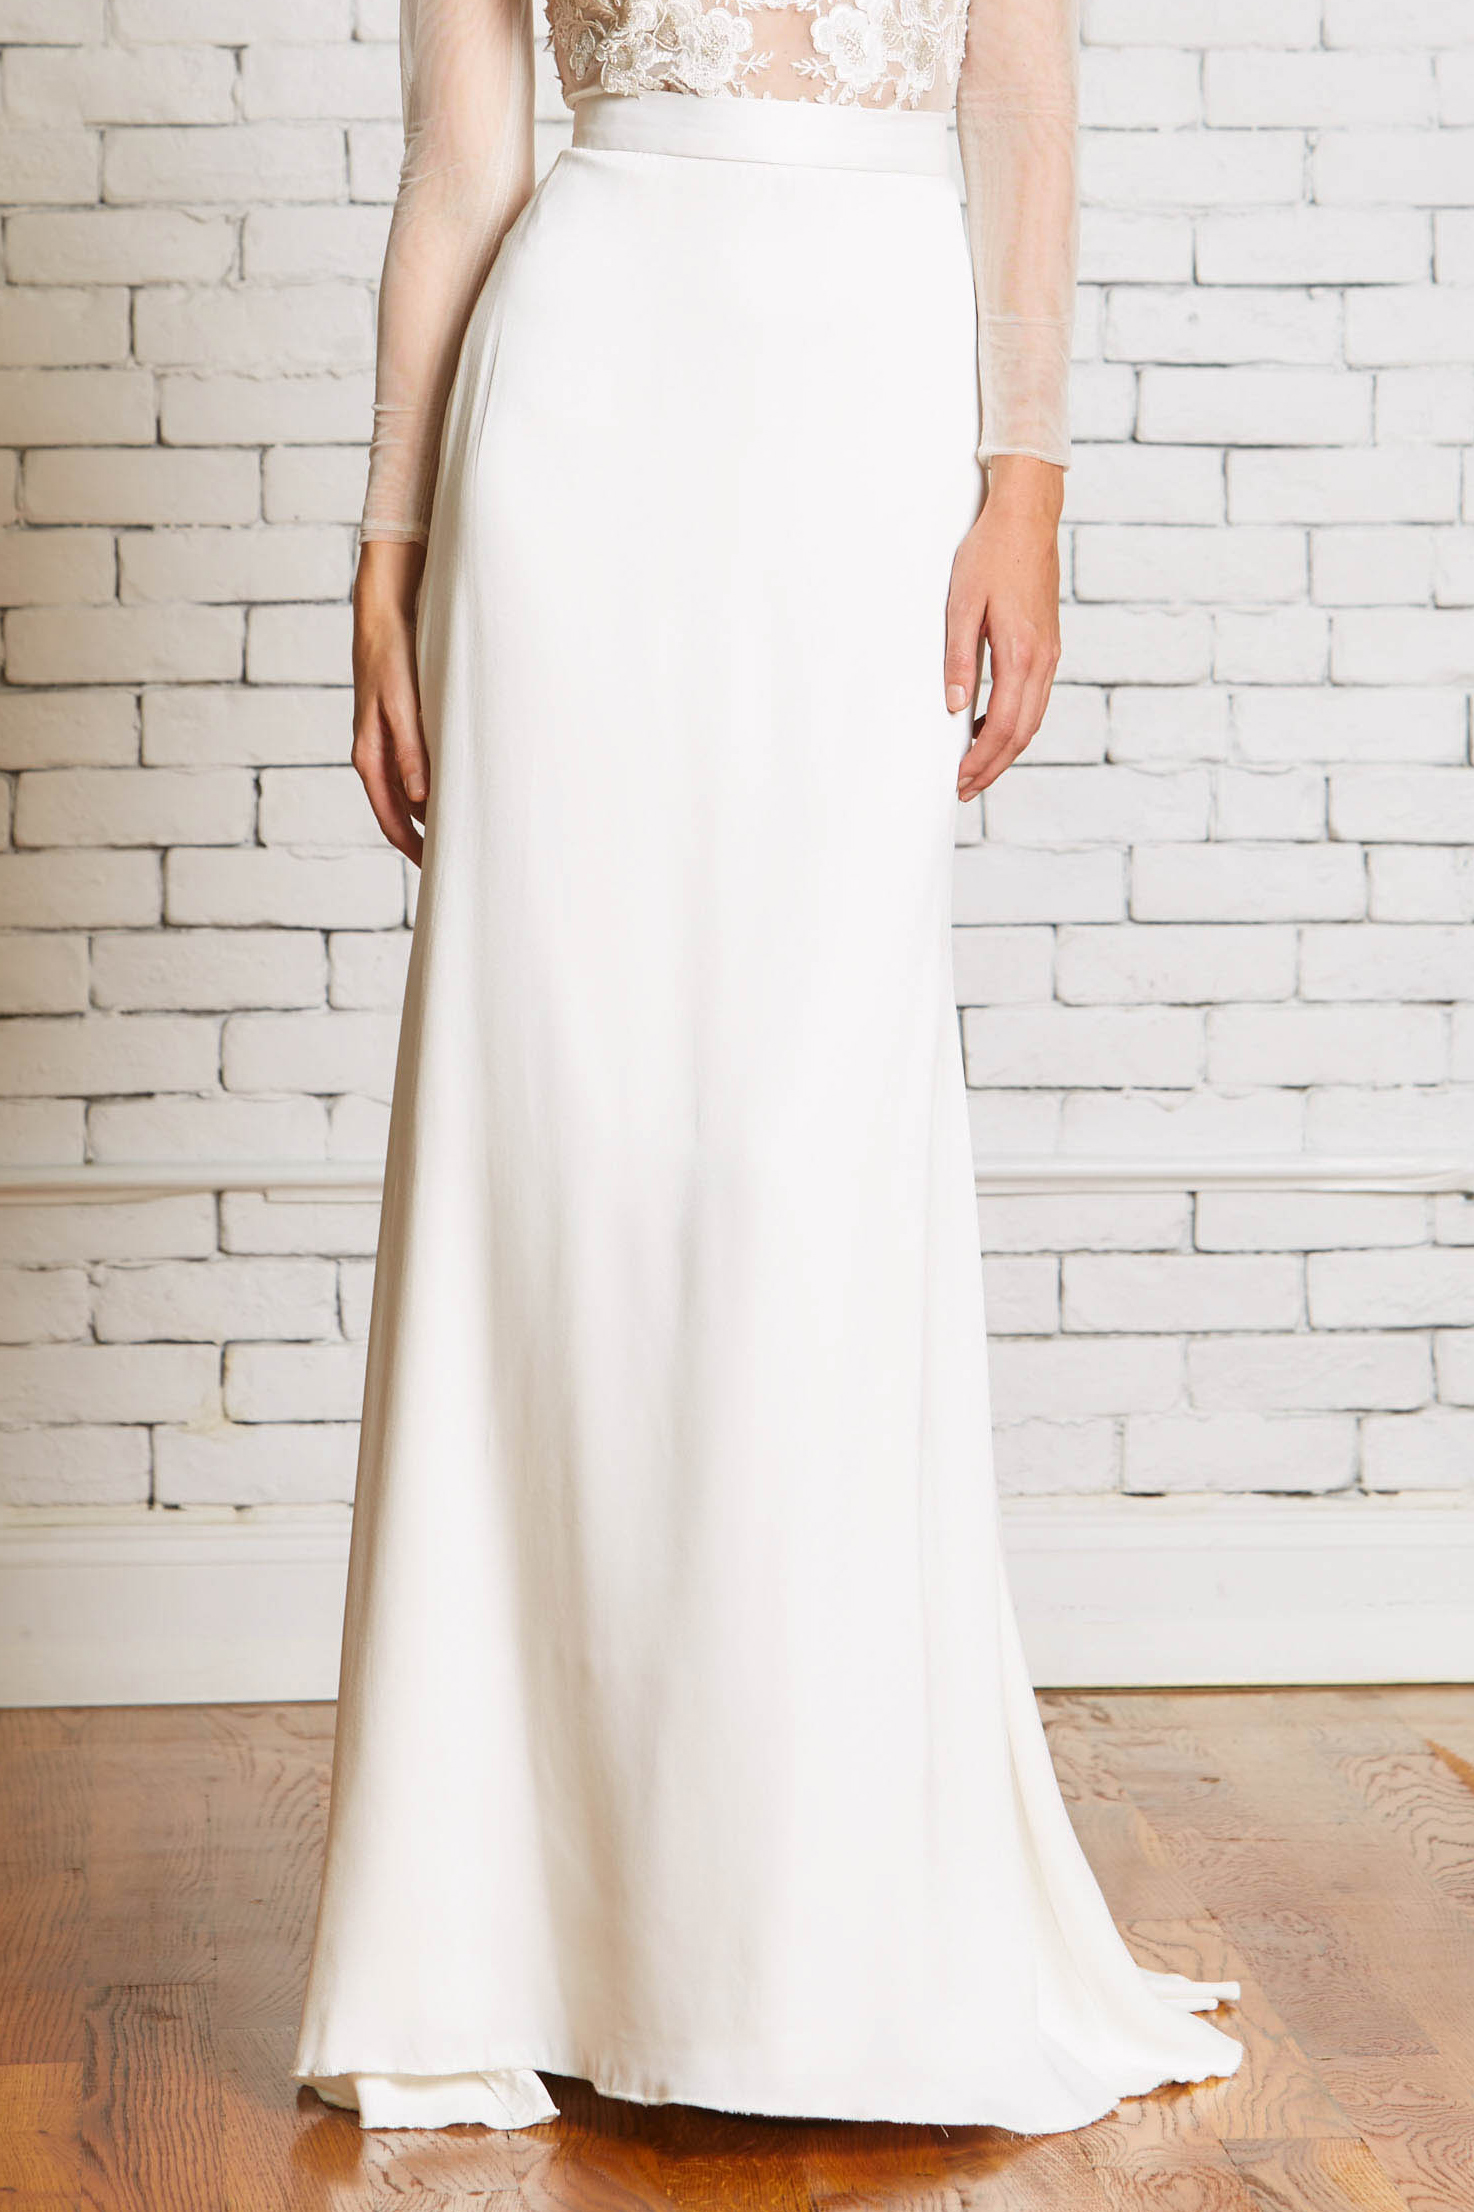 Rebecca_Schoneveld_Alma Skirt_Front_Bridal_Seperates_Sexy_Modern_wedding_Dress.jpg